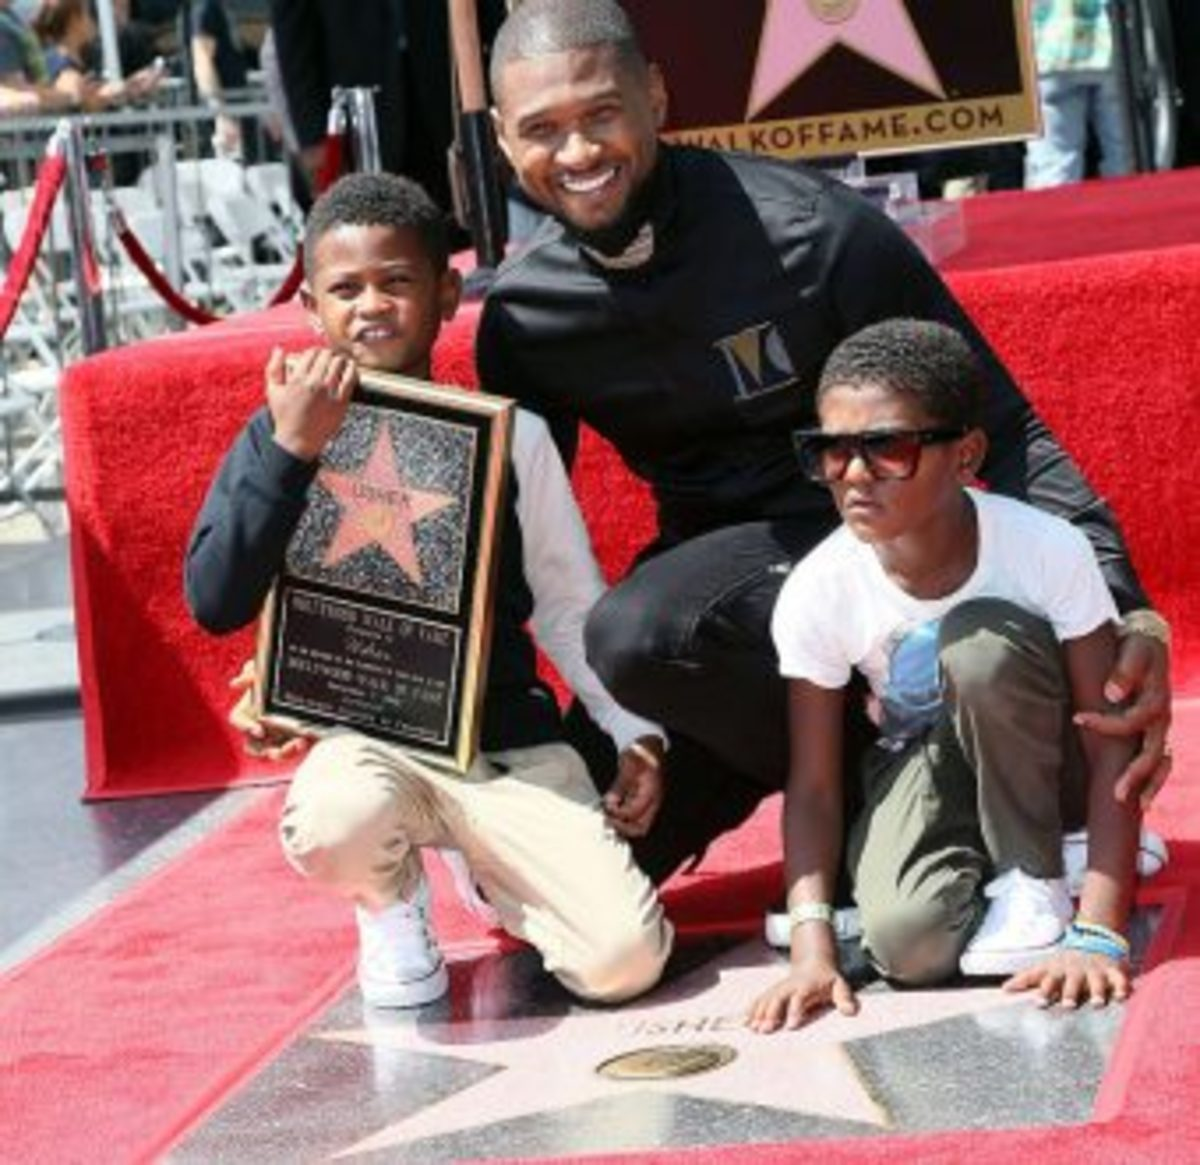 usher-walk-of-fame-2-340x330